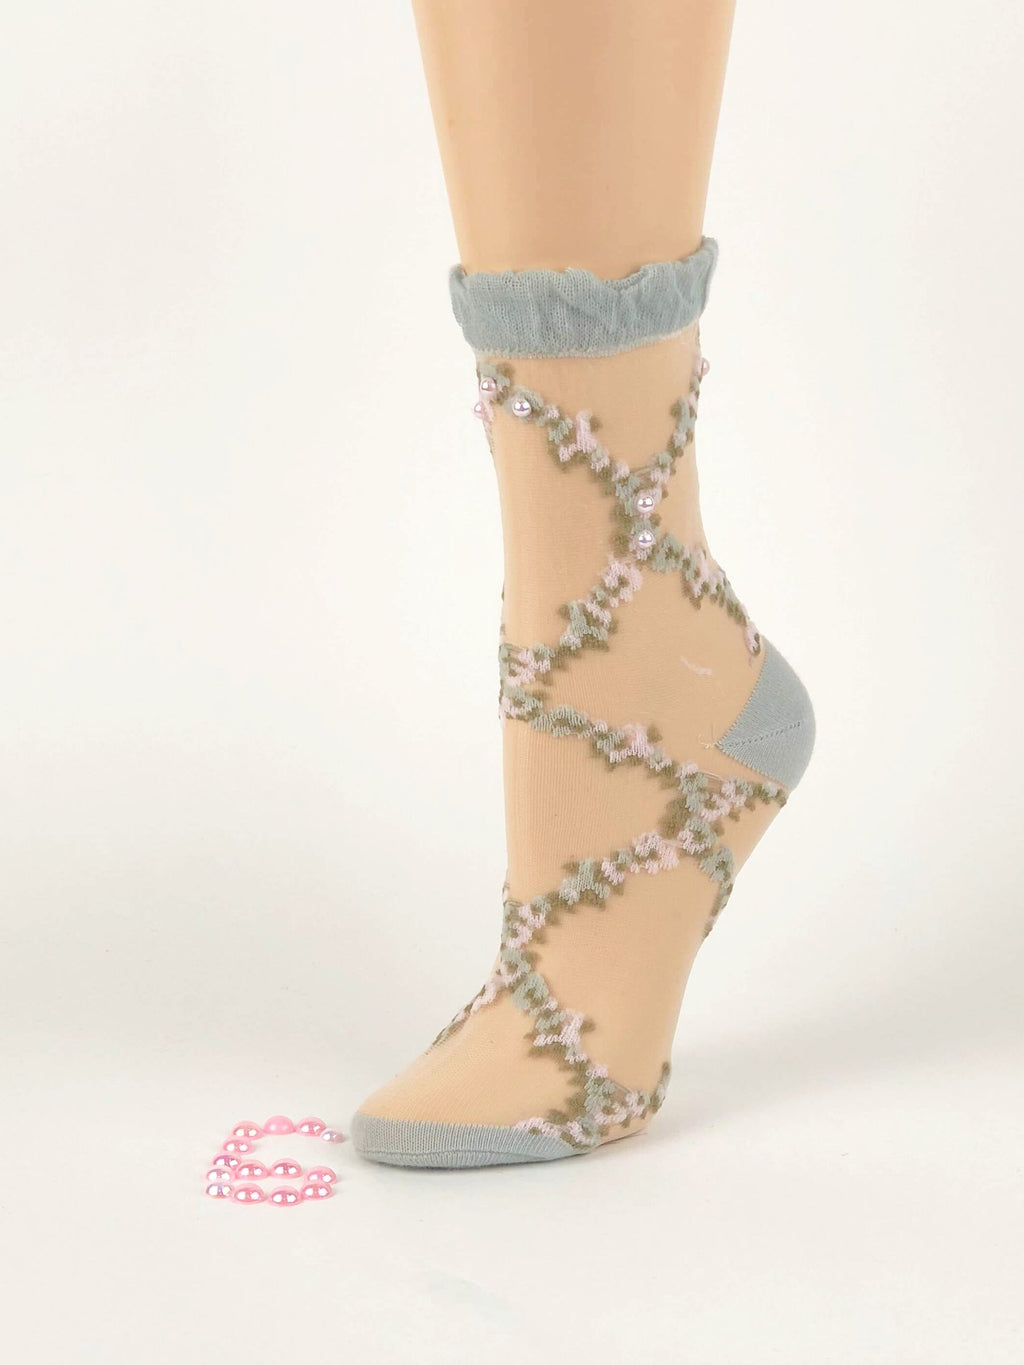 Pink/Grey Criss-Cross Sheer Socks - Global Trendz Fashion®